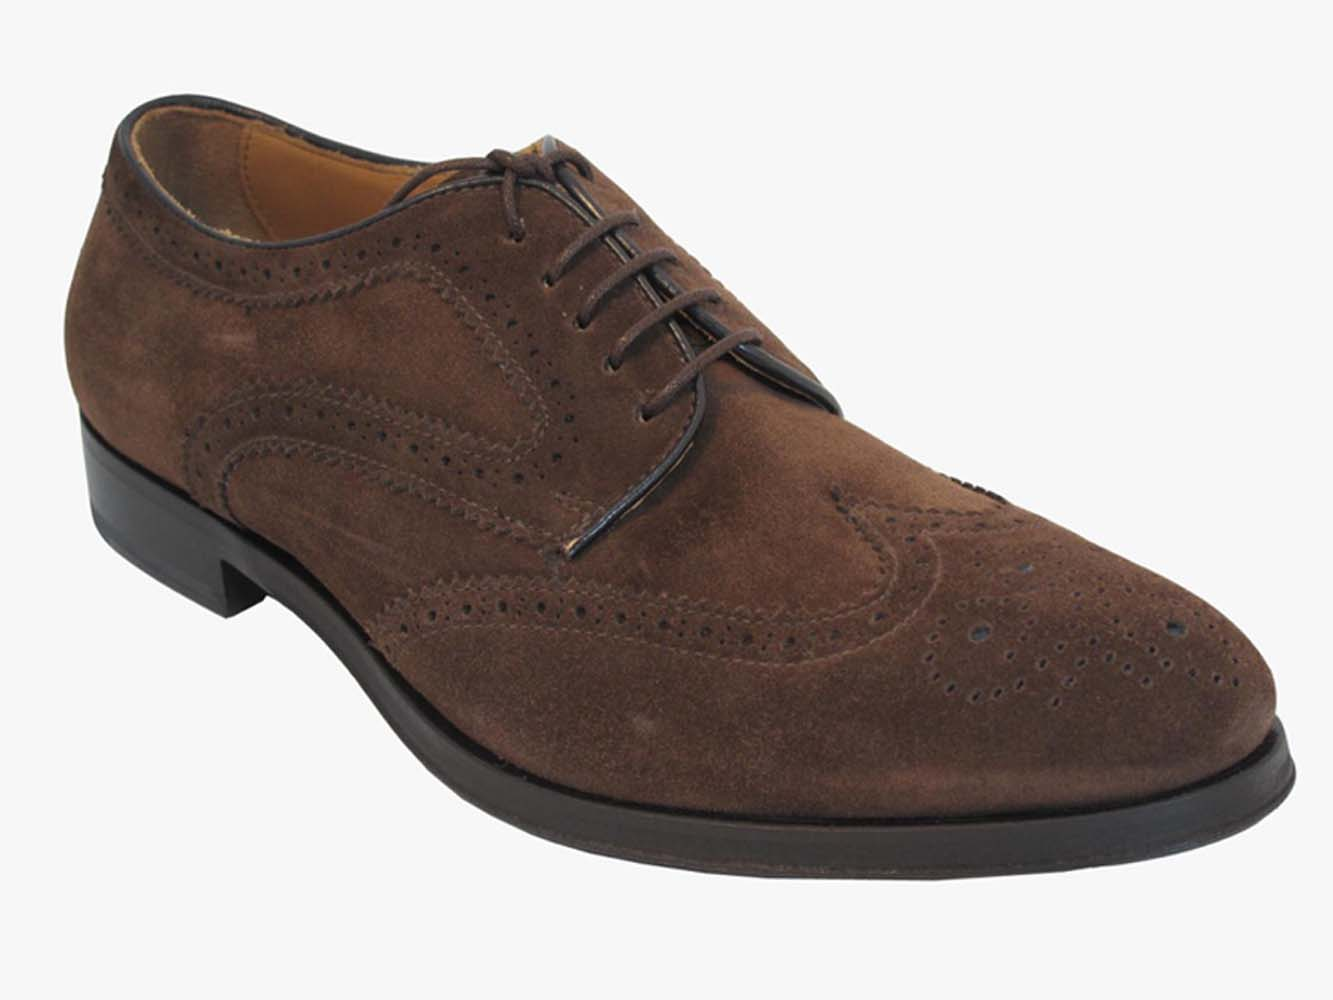 doucals-1038-oxford-lace-up-shoes-brown.jpg